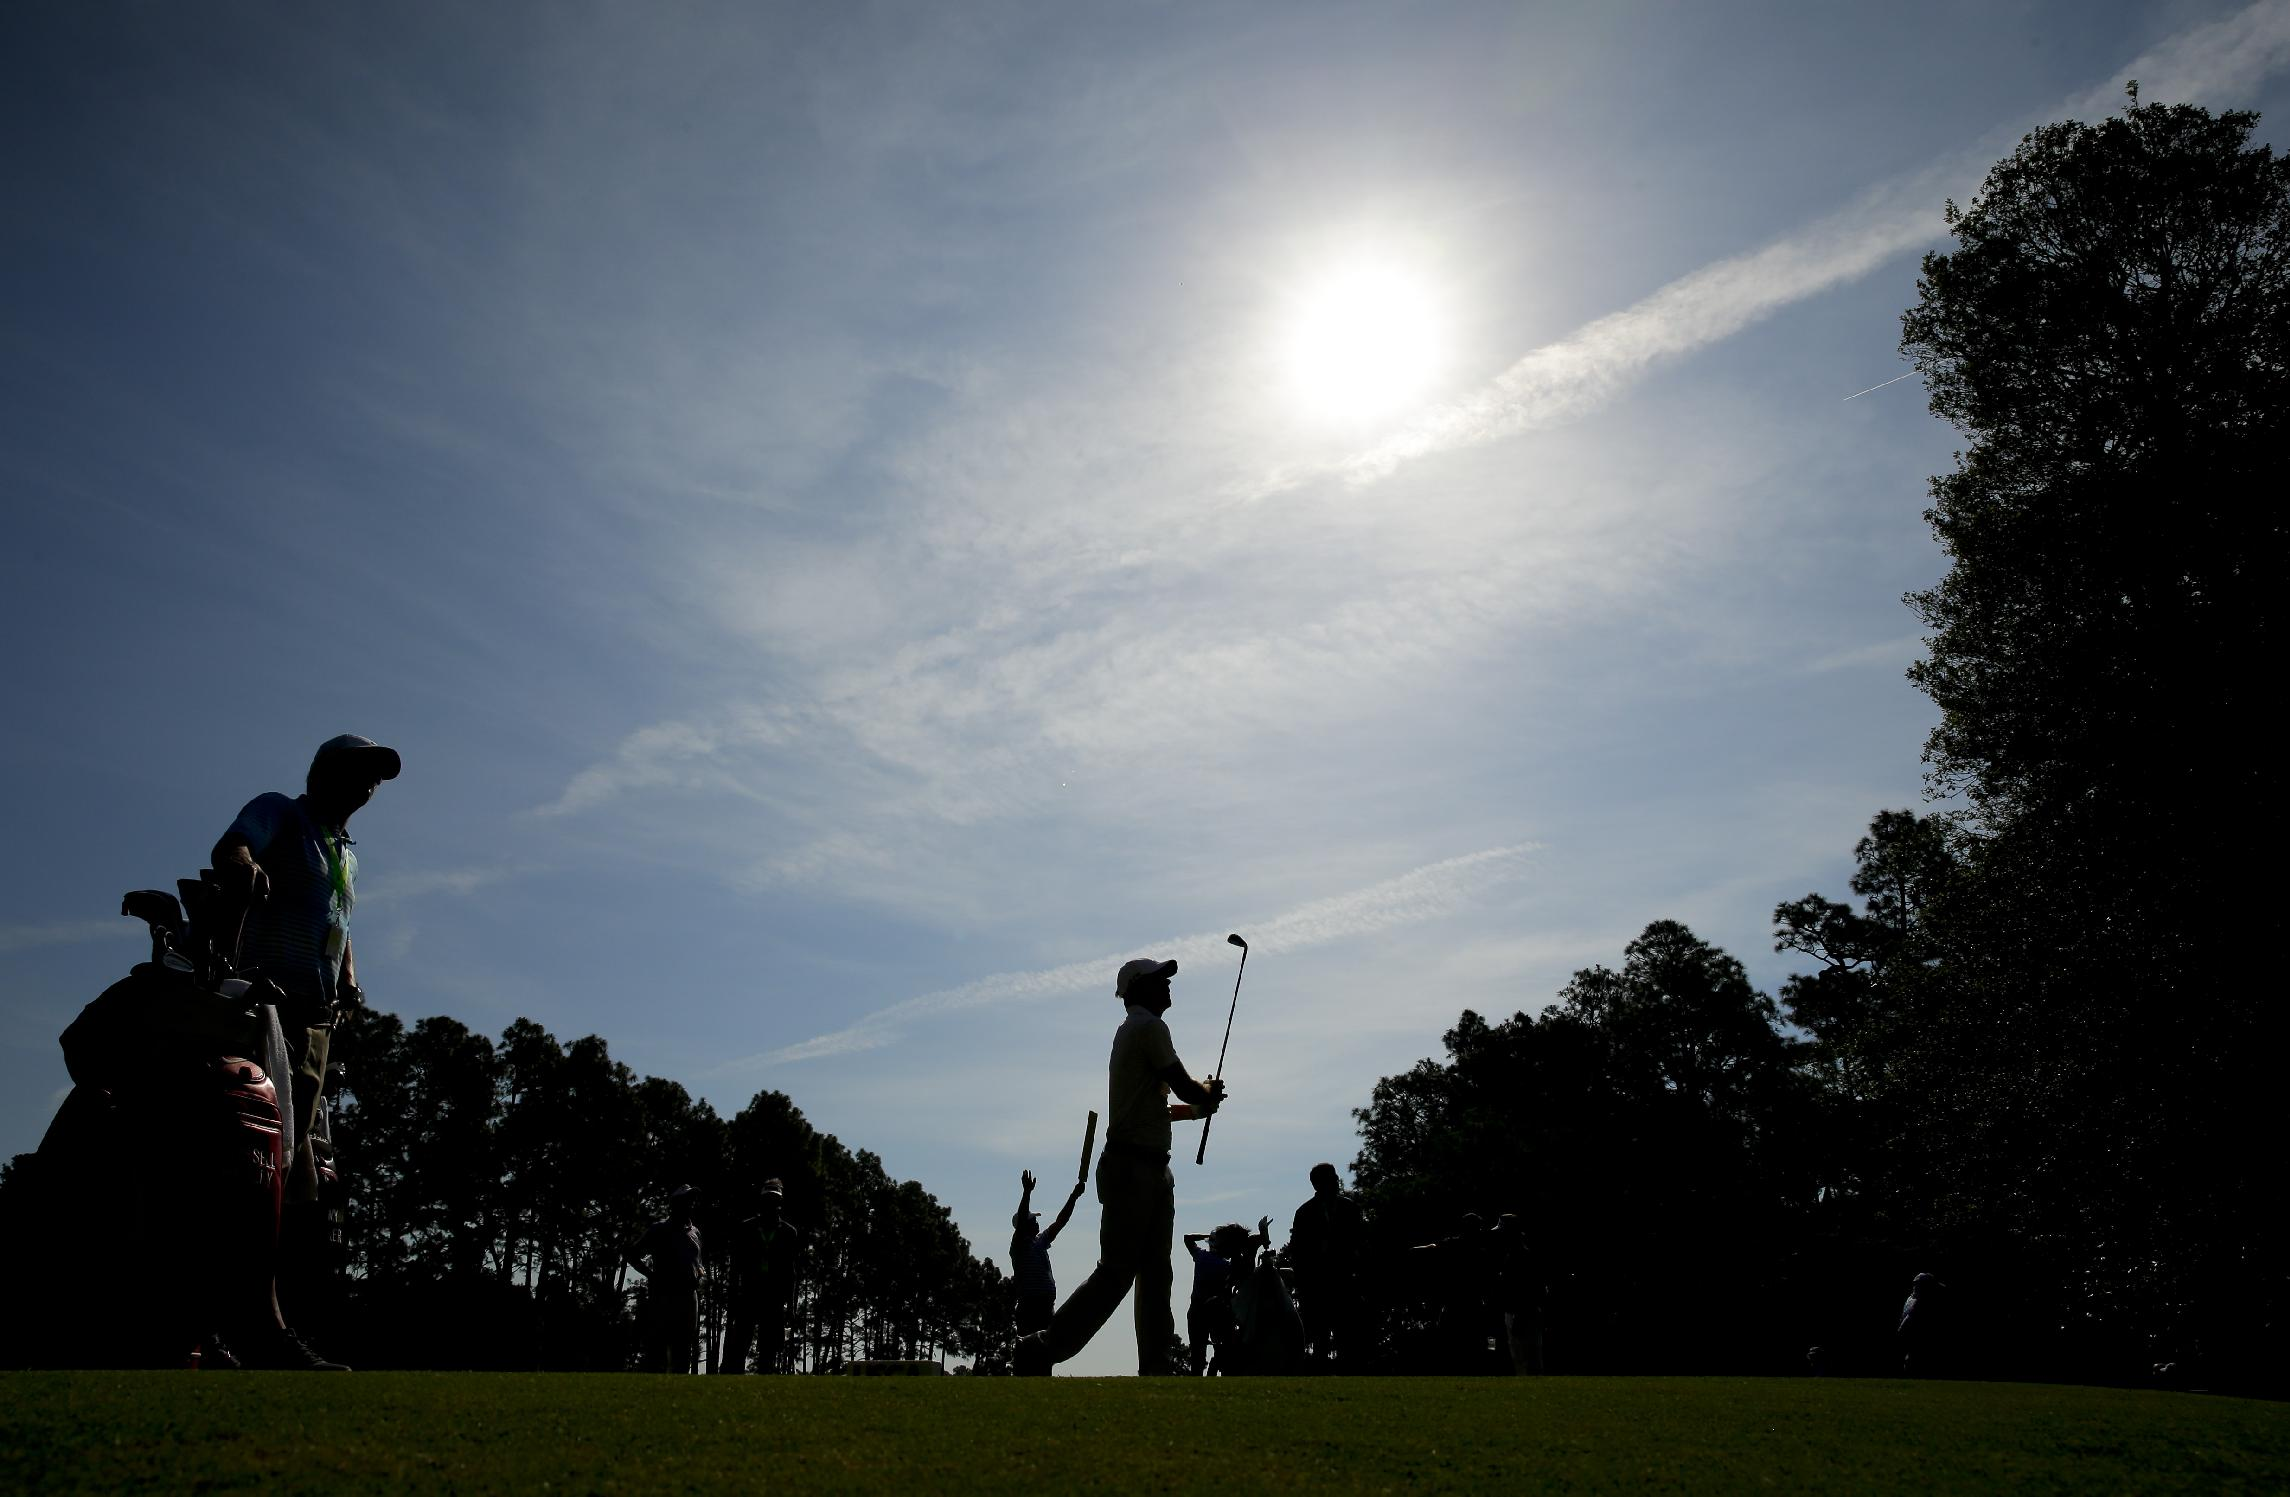 Russell Henley watches his tee shot on the seventh hole during a practice round for the U.S. Open golf tournament in Pinehurst, N.C., Tuesday, June 10, 2014. The tournament starts Thursday